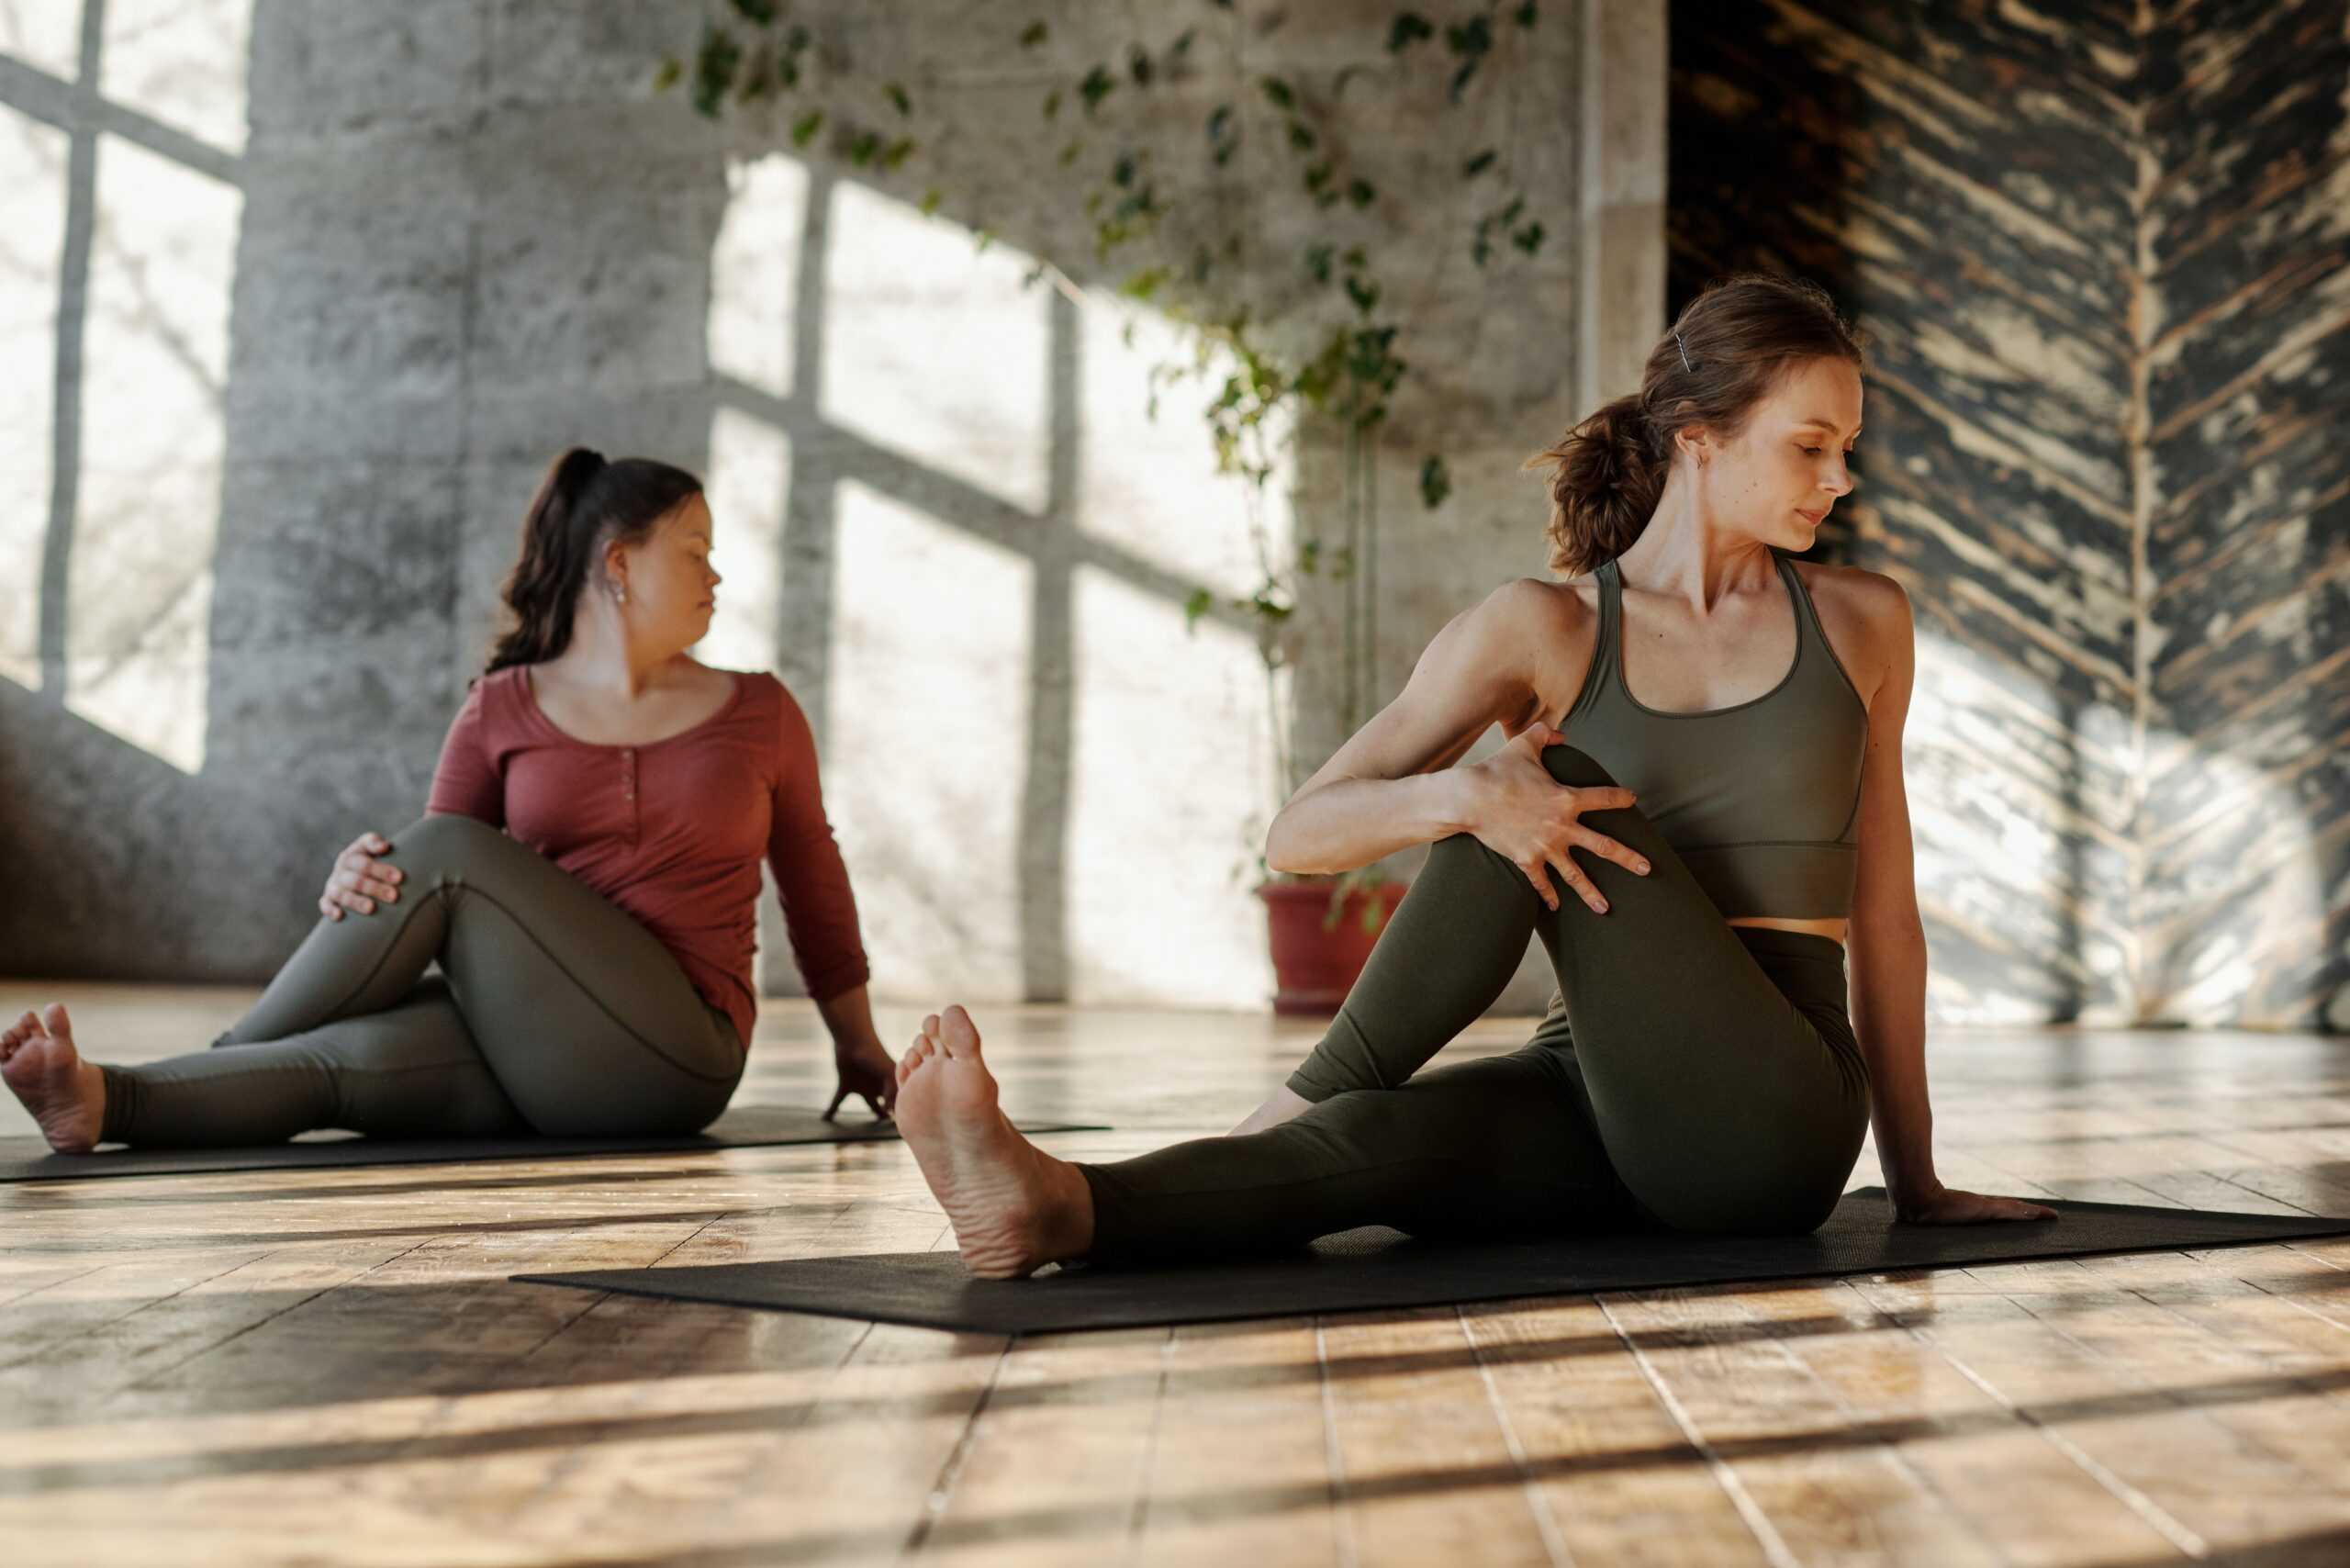 The function of Twists in Yoga